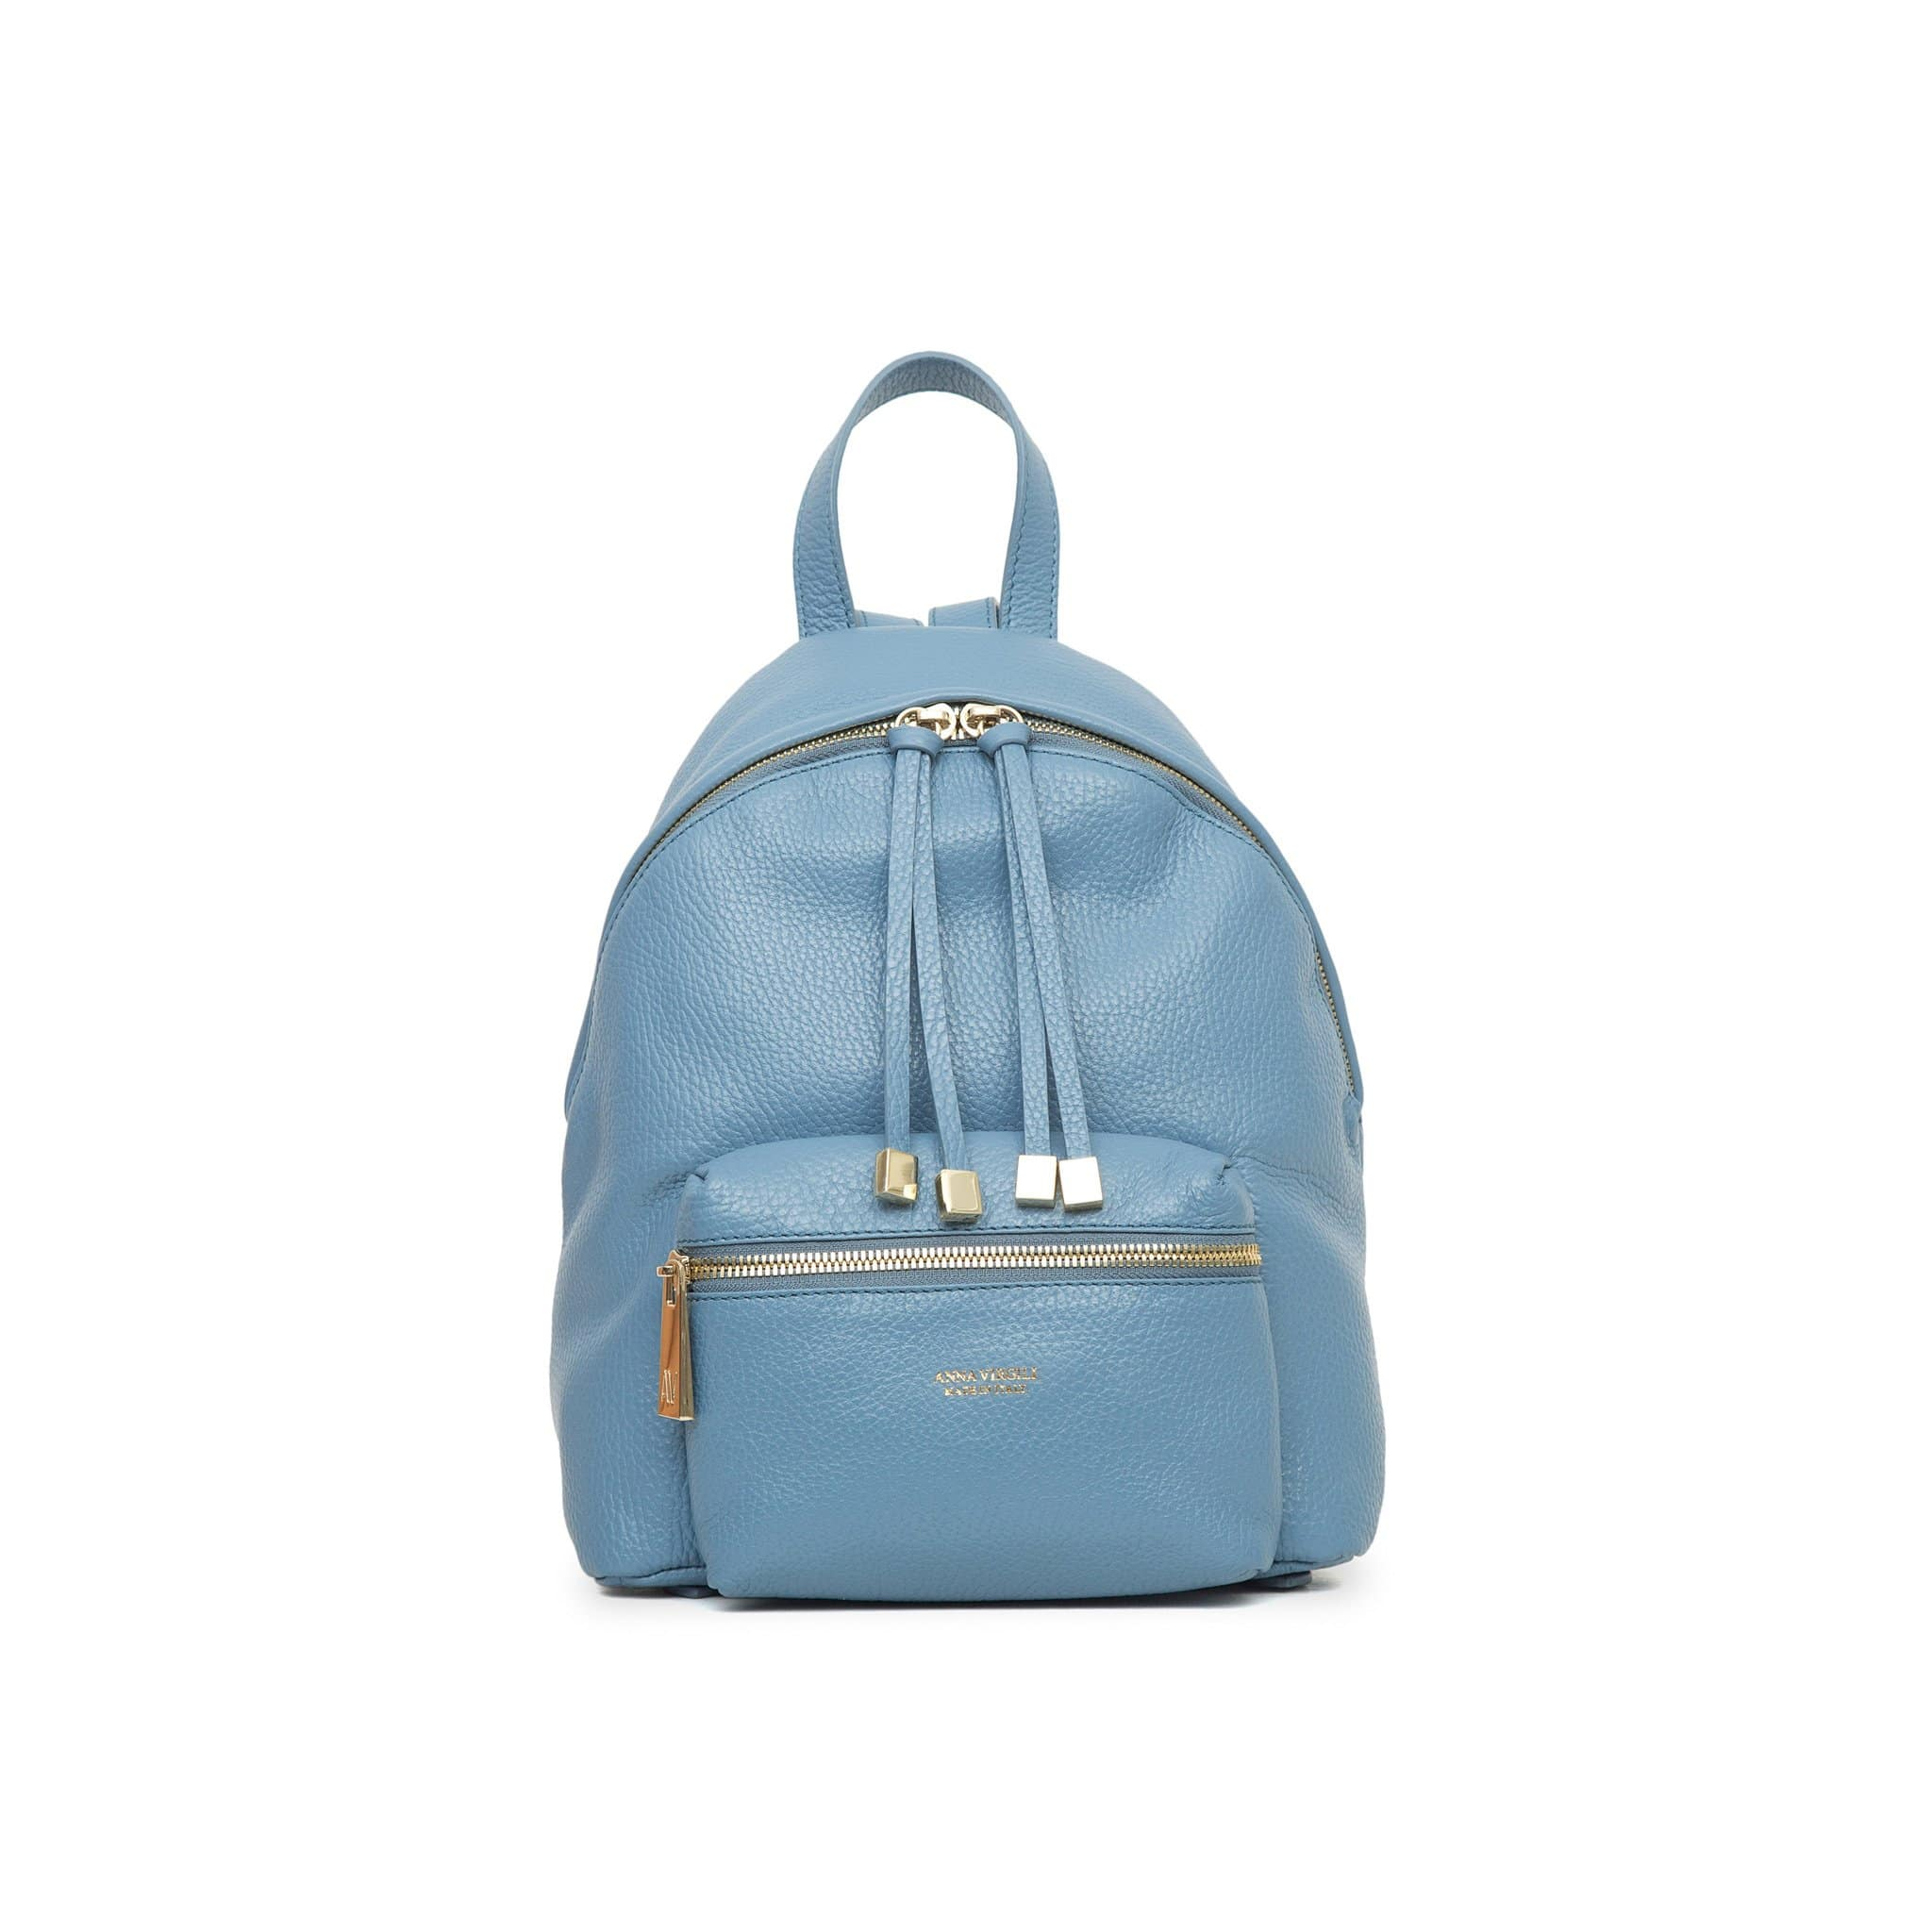 Alessia Rimini Leather Backpack - Powder